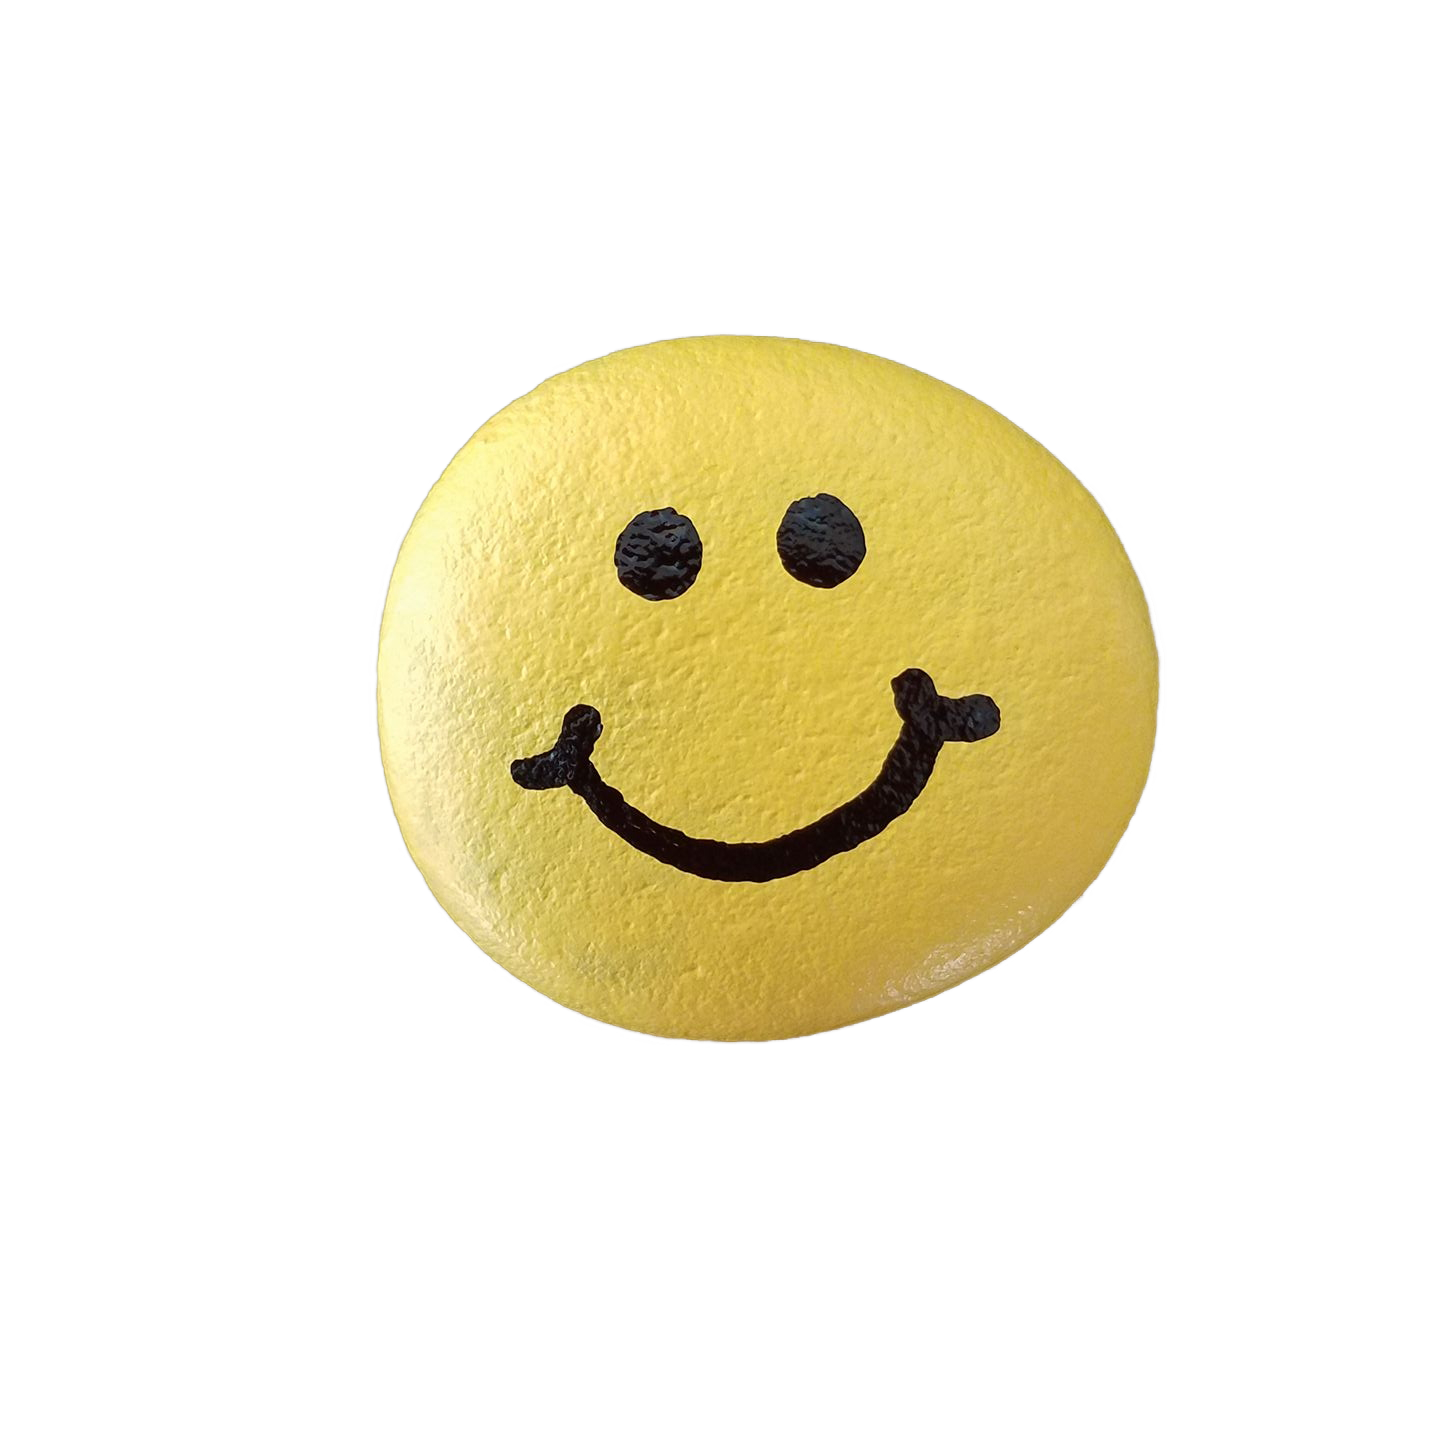 A rock painted yellow with a smiley face on it